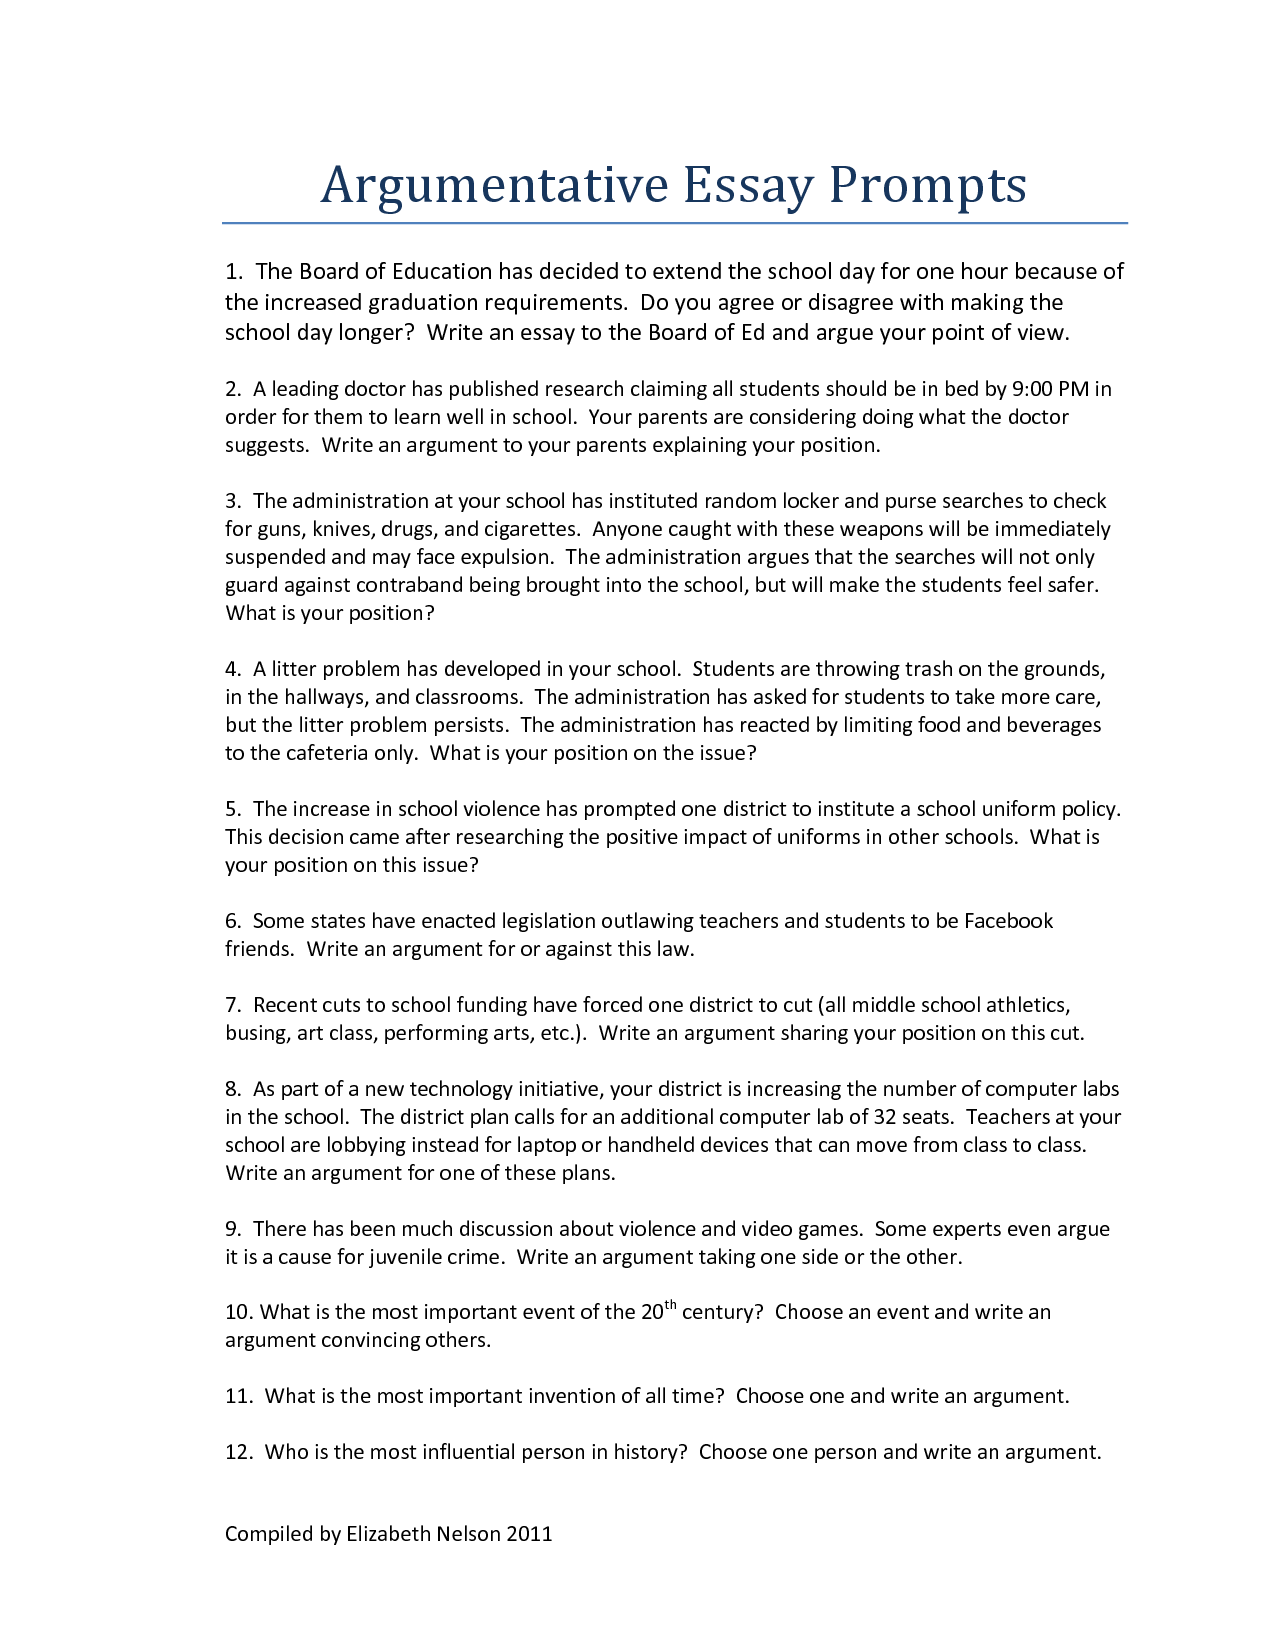 arguments for essay topics Common core writing arguments/persuasives topics for educators #argument # essay #education #resources #topics | see more ideas about argumentative.